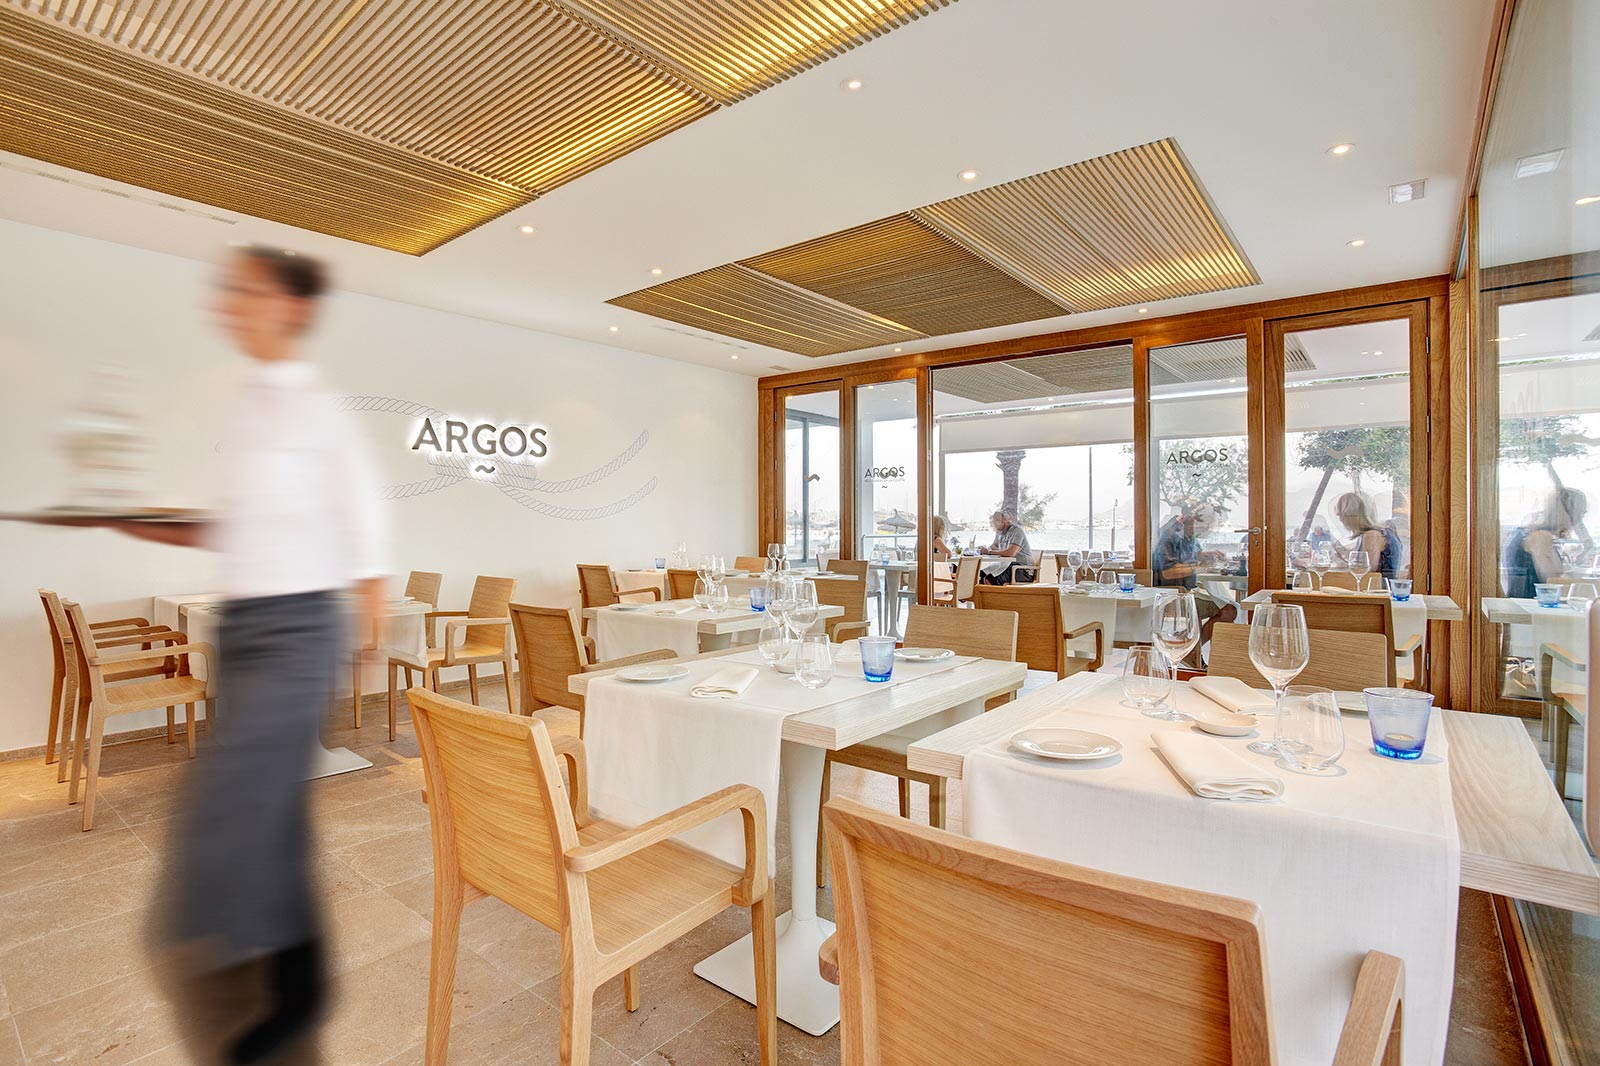 Argos_Restaurant_Young_425